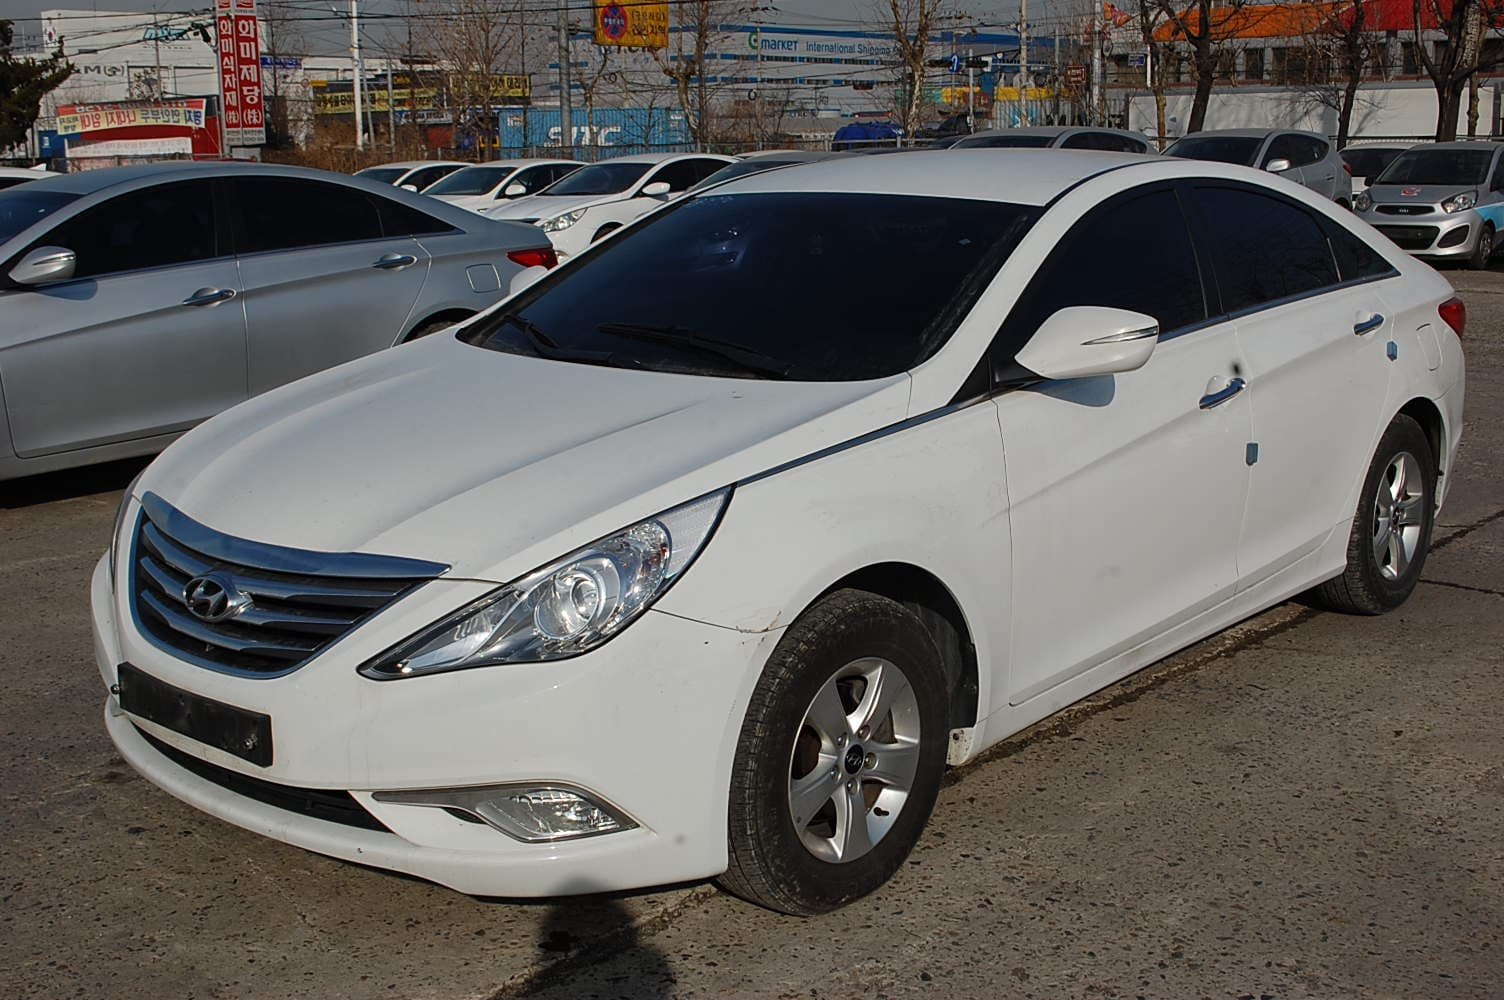 is fits itm pc image hyundai dam racer lip under spoiler front loading air sonata